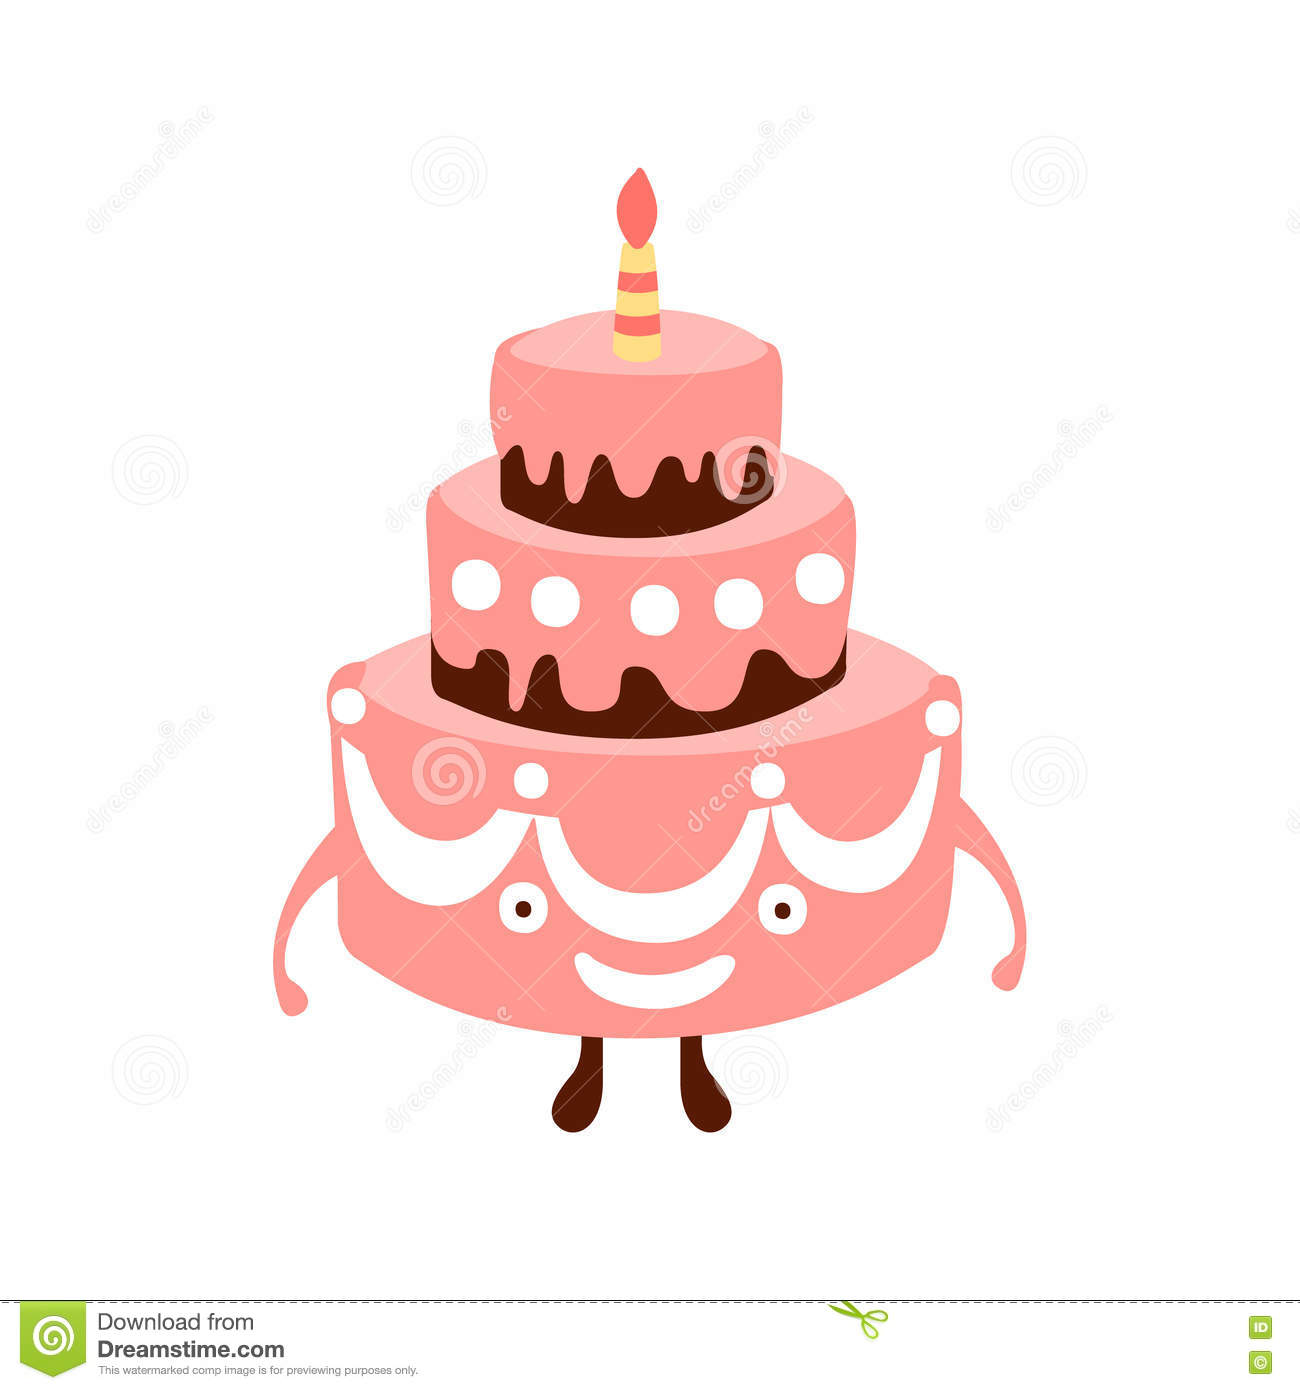 Girl Frosting A Cake Image Cartoon